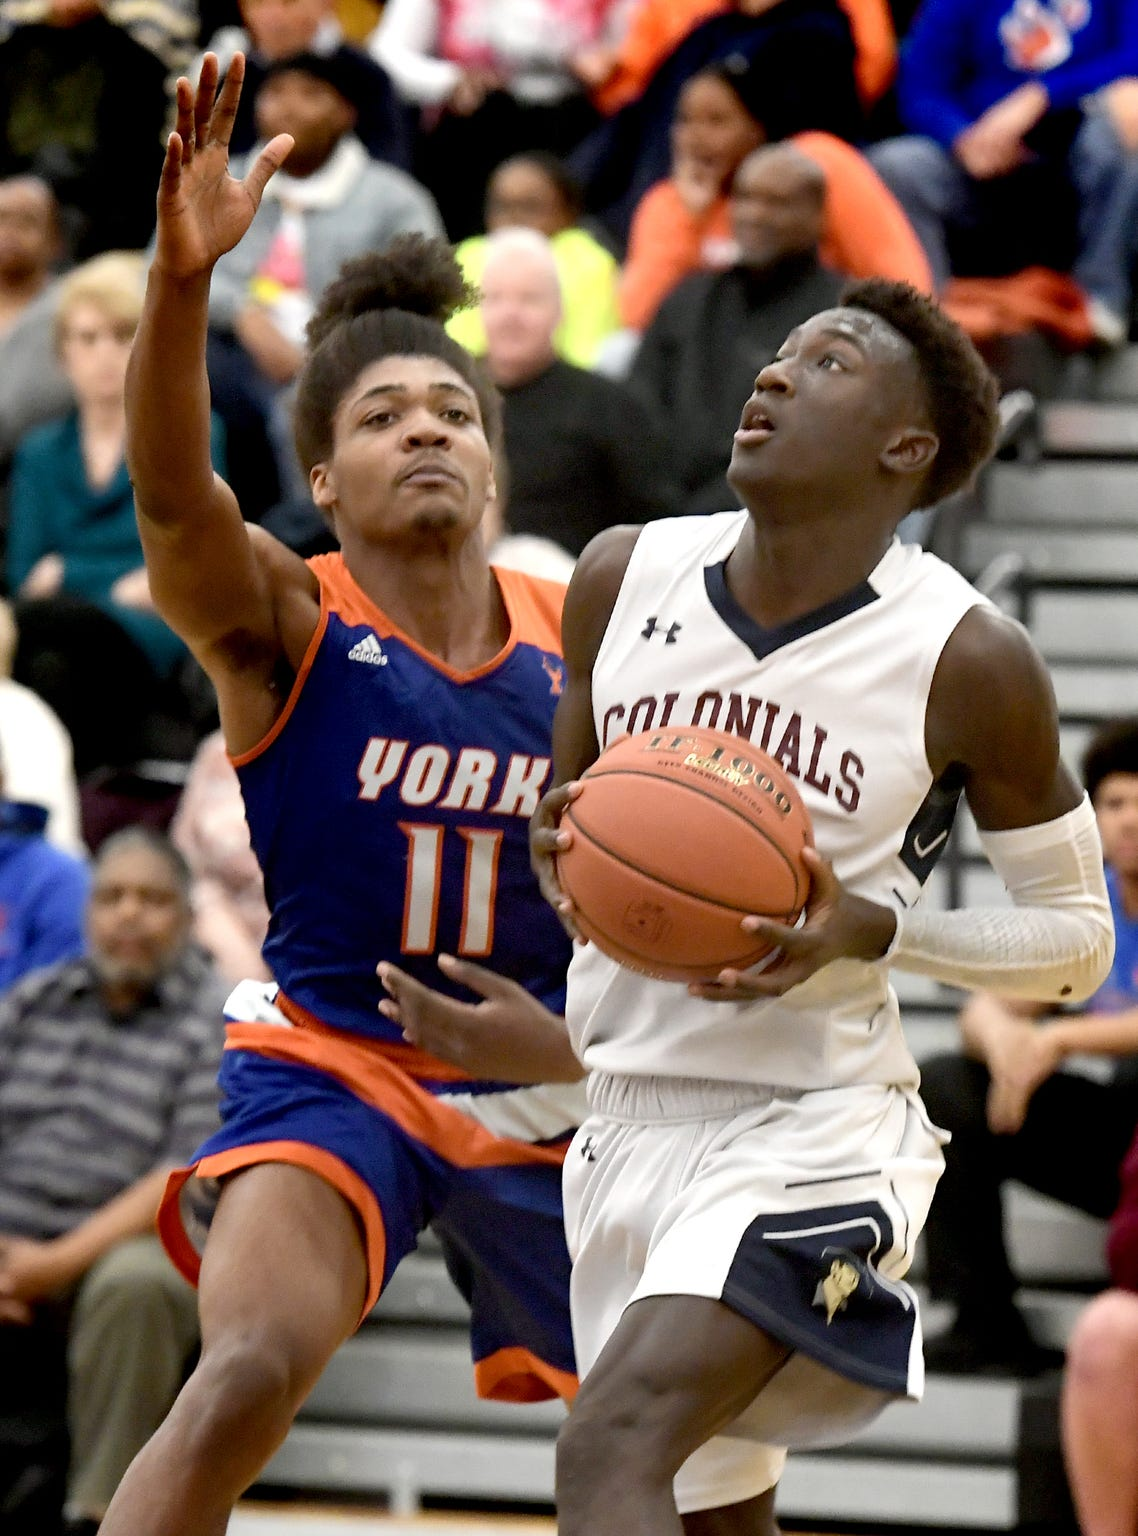 New Oxford's Abdul Janneh gets by York High's Branden Mutunga during semifinal action at Red Lion Tuesday, Feb. 11, 2020. New Oxford went on to win 60-54. Bill Kalina photo